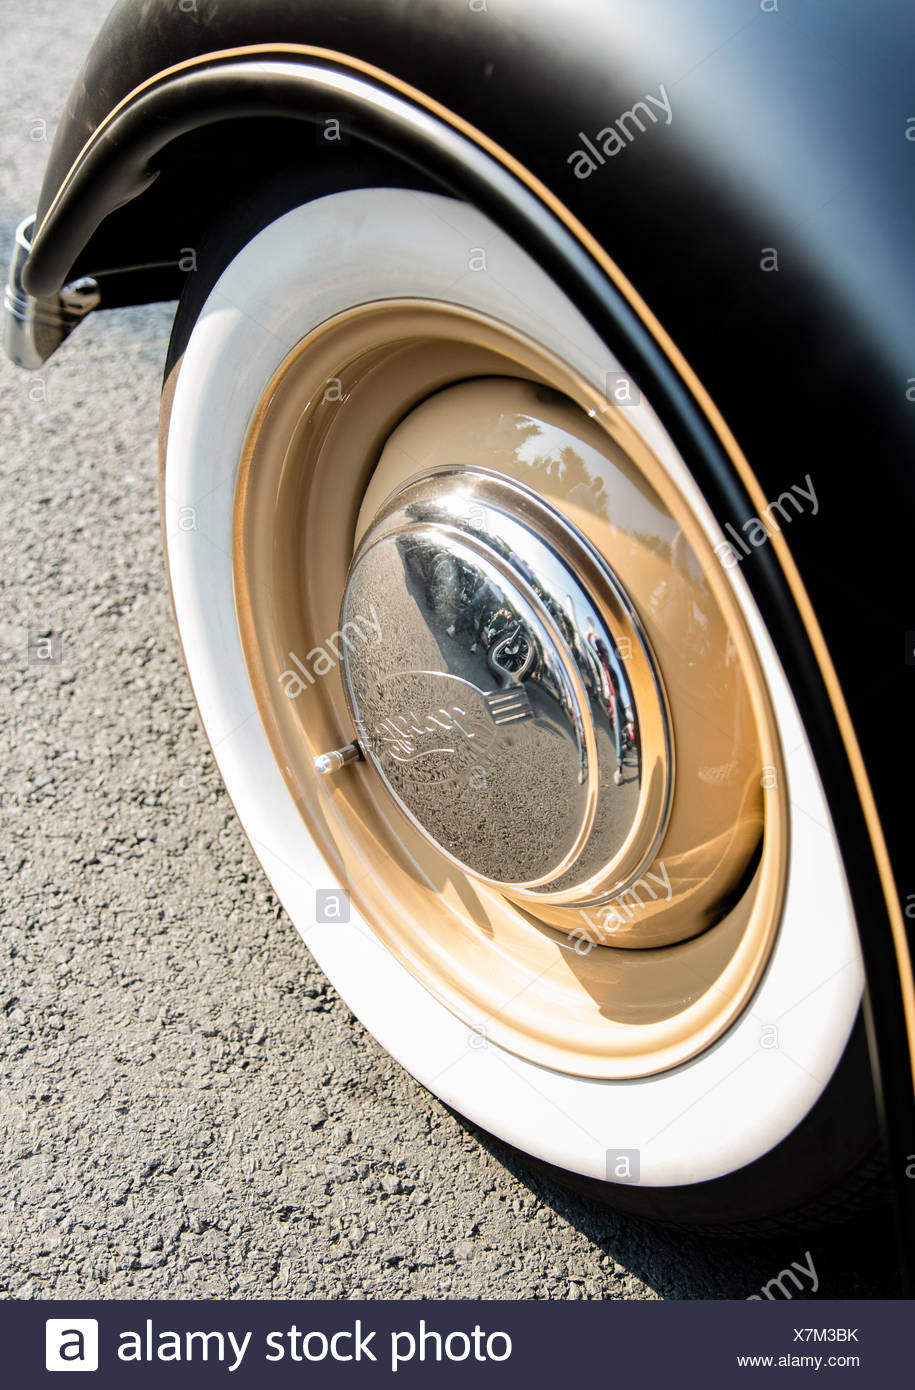 Whitewall tire of a custom Ford car at the Wheels and Waves custom motorbike festival in Biarritz, France. - Stock Image